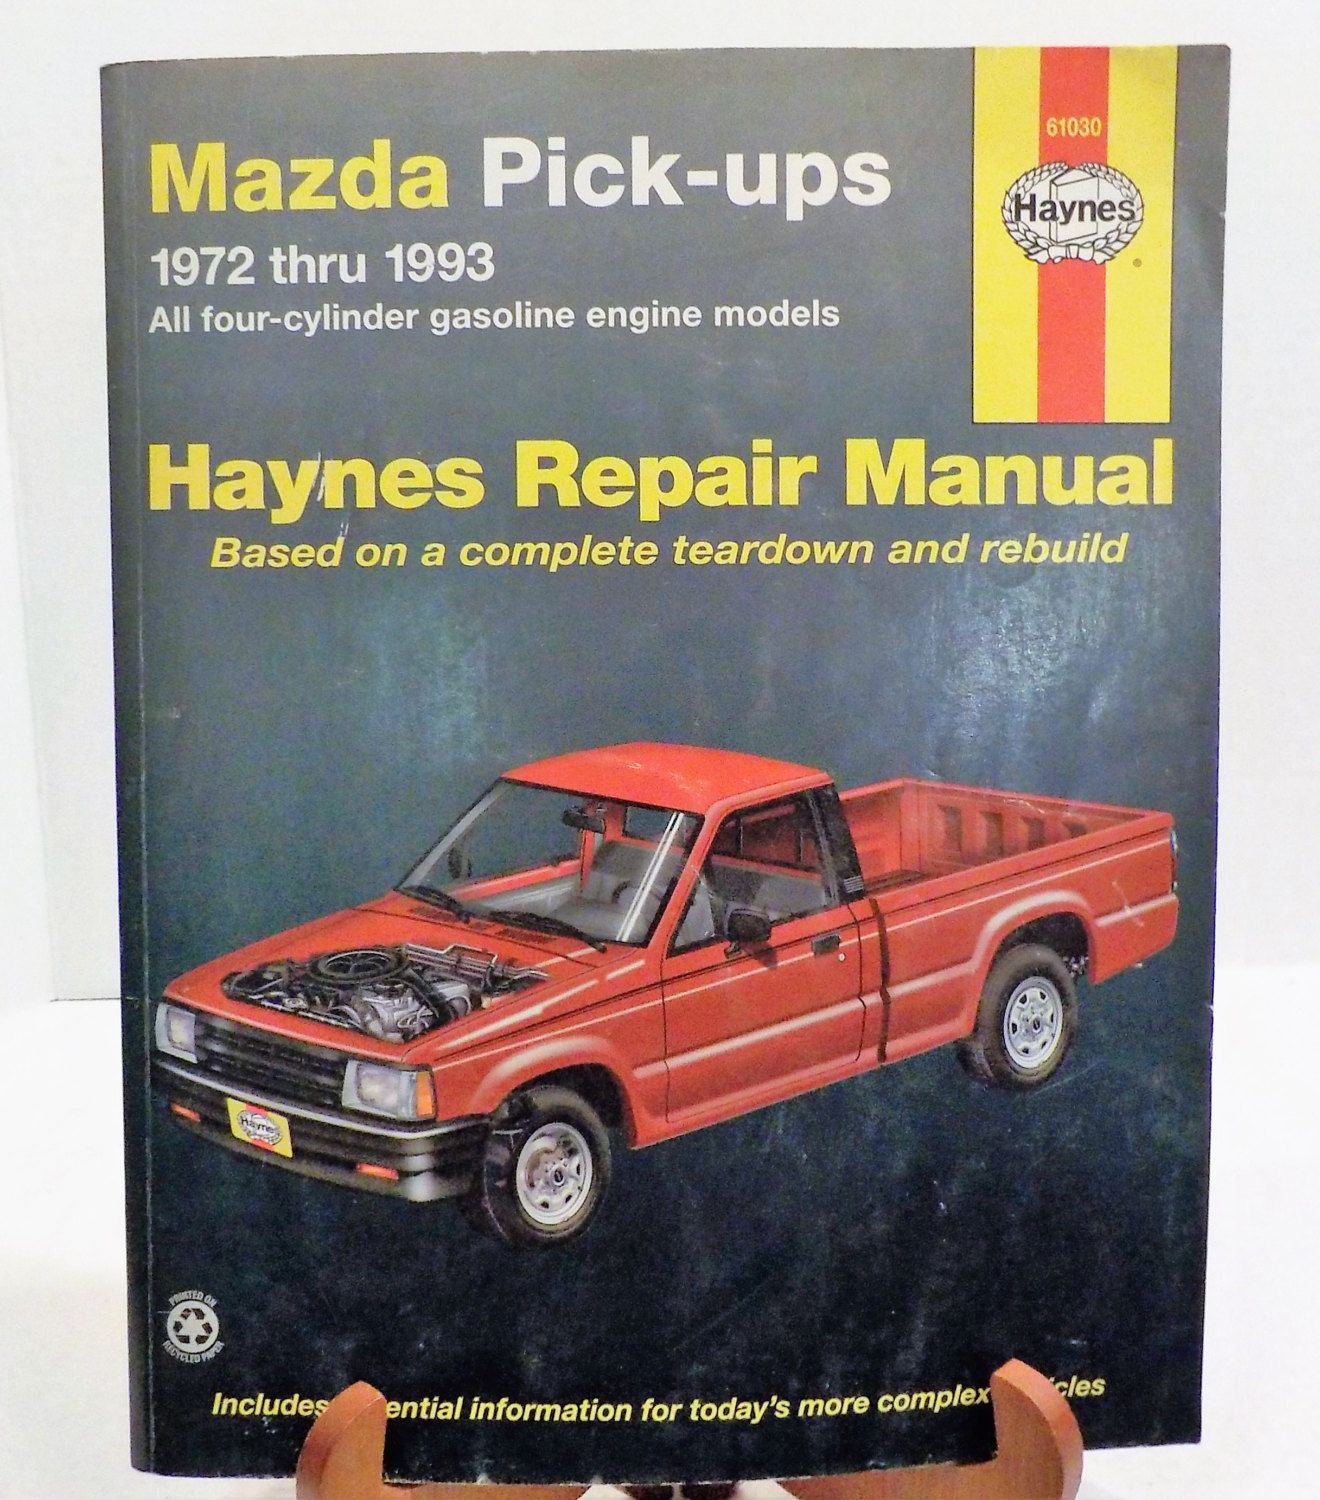 haynes mazda pickups repair manual 1972 1993 12 chapters by rh pinterest com 2016 Mazda Pickup 1984 Mazda Pickup